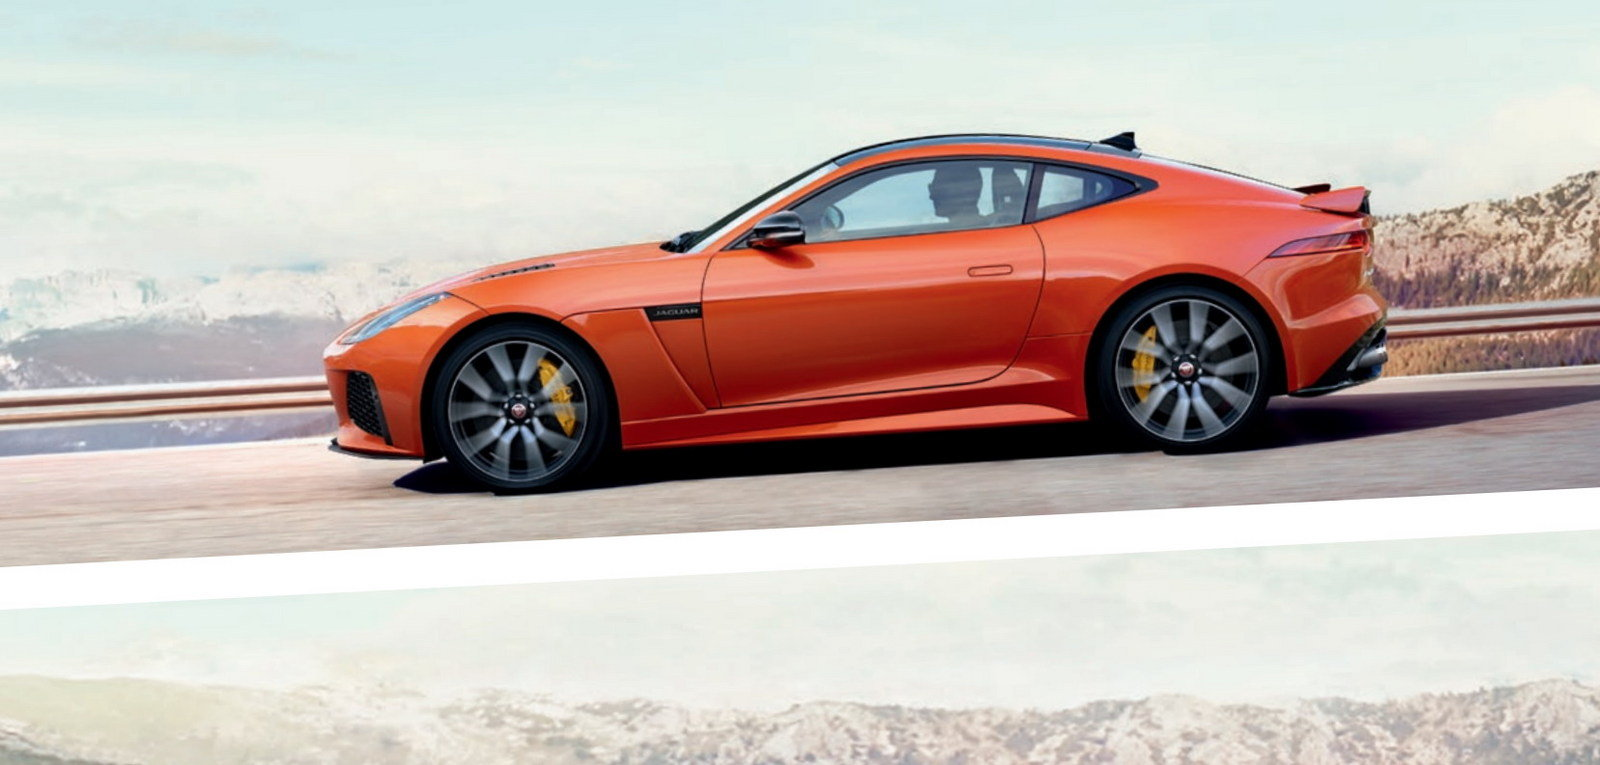 2017 jaguar f type svr coupe picture 663042 car review top speed. Black Bedroom Furniture Sets. Home Design Ideas